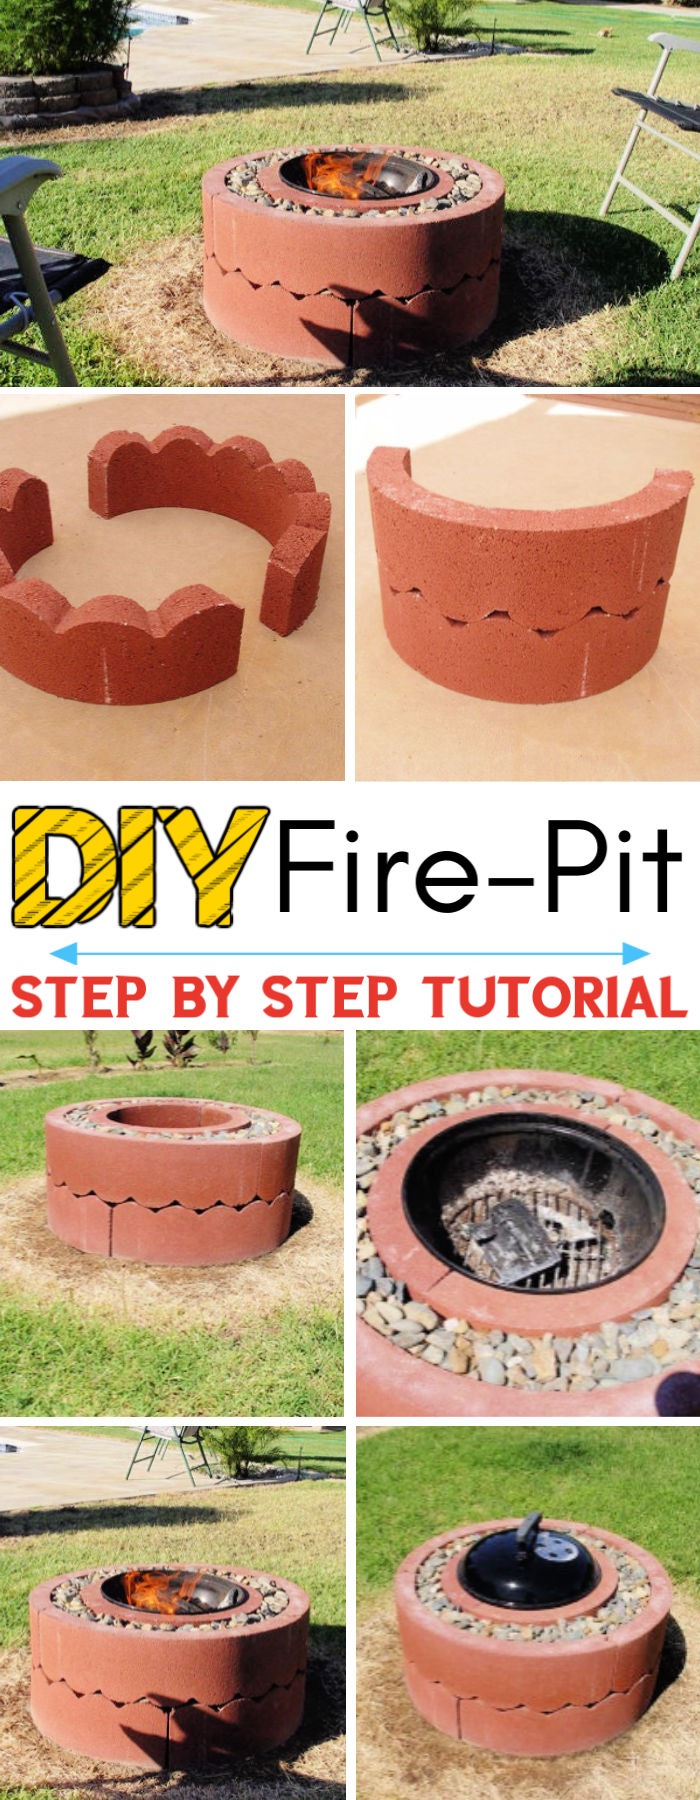 DIY 50 Fire Pit Using Concrete Tree Rings